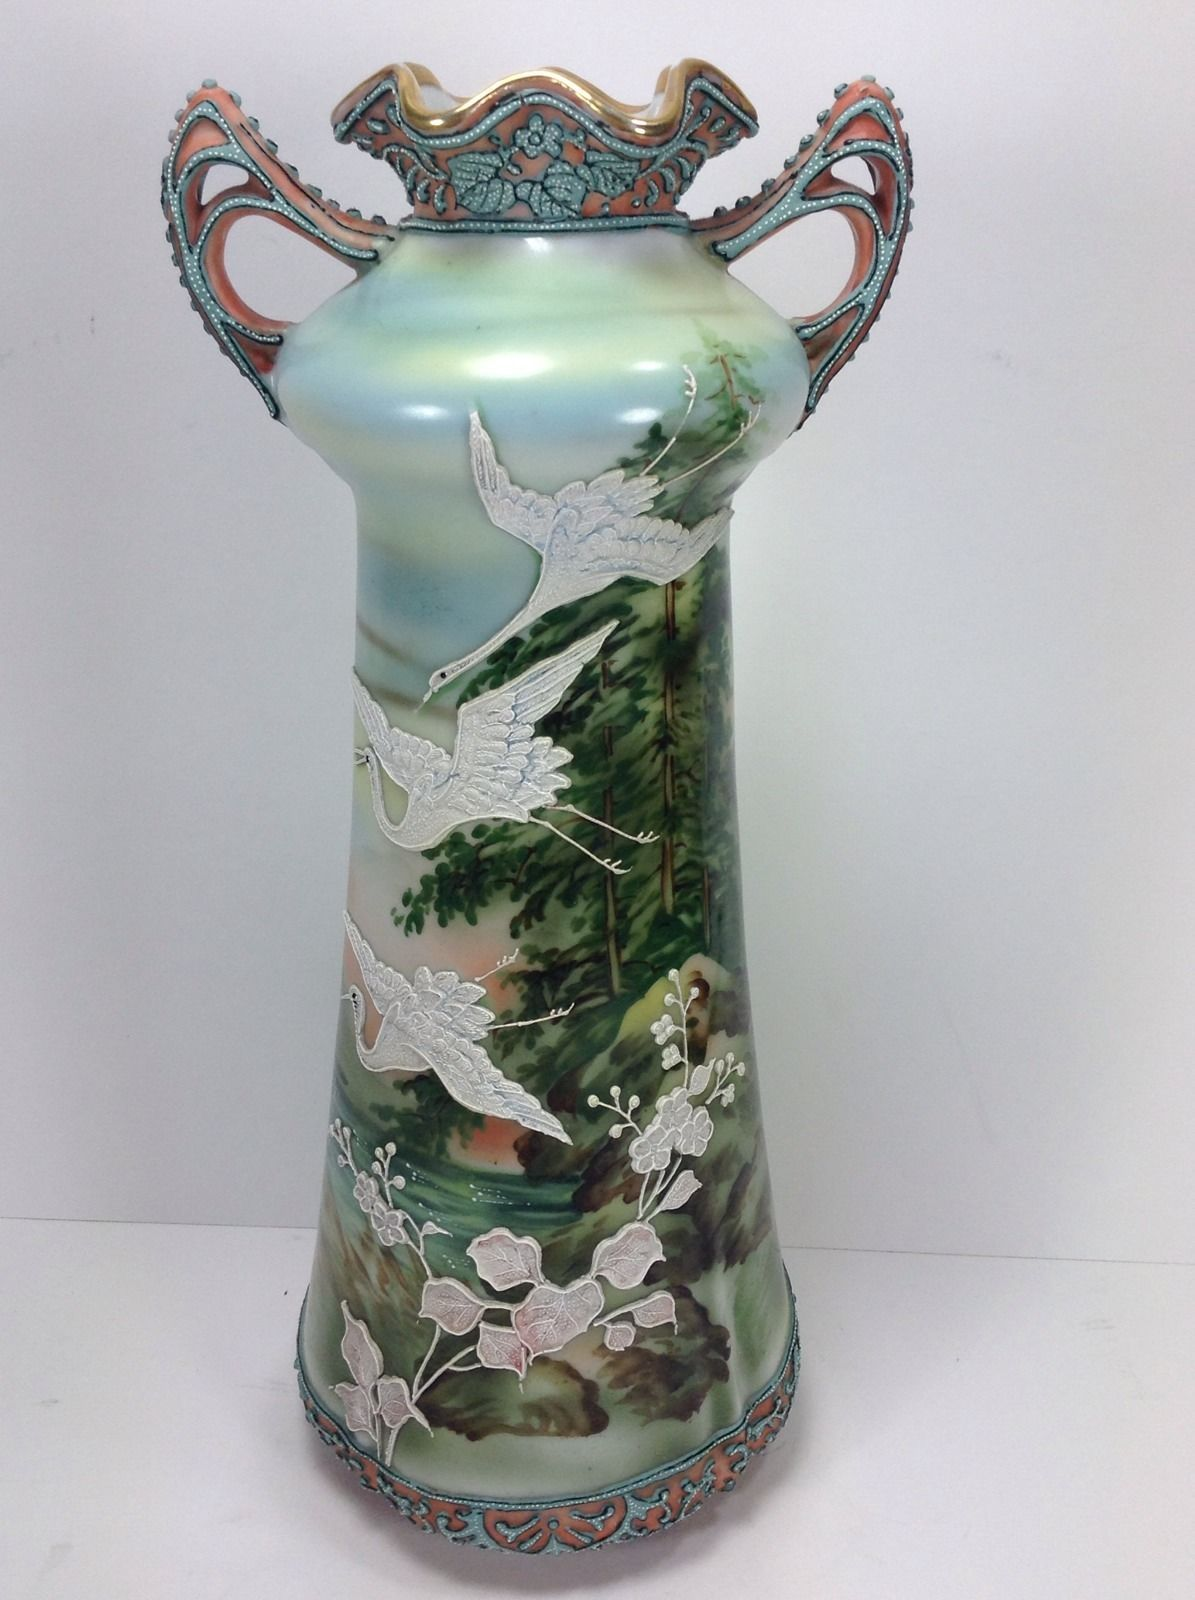 Antique nippon moriage vase flying geese swan birds rare 12 lake antique nippon moriage vase flying geese swan birds rare 12 lake landscape reviewsmspy